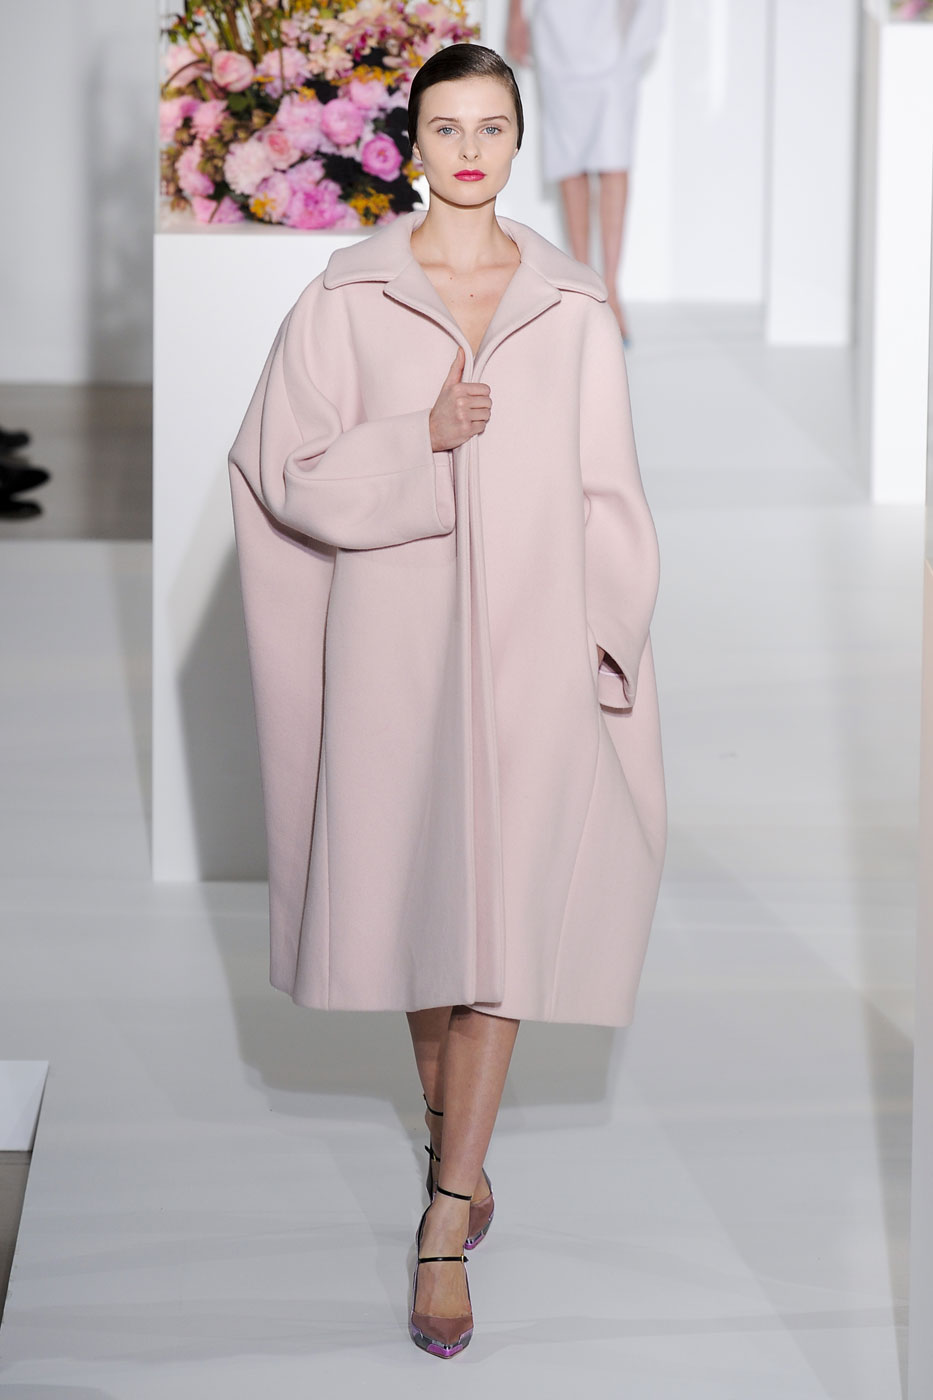 The Cocoon Coat Trend